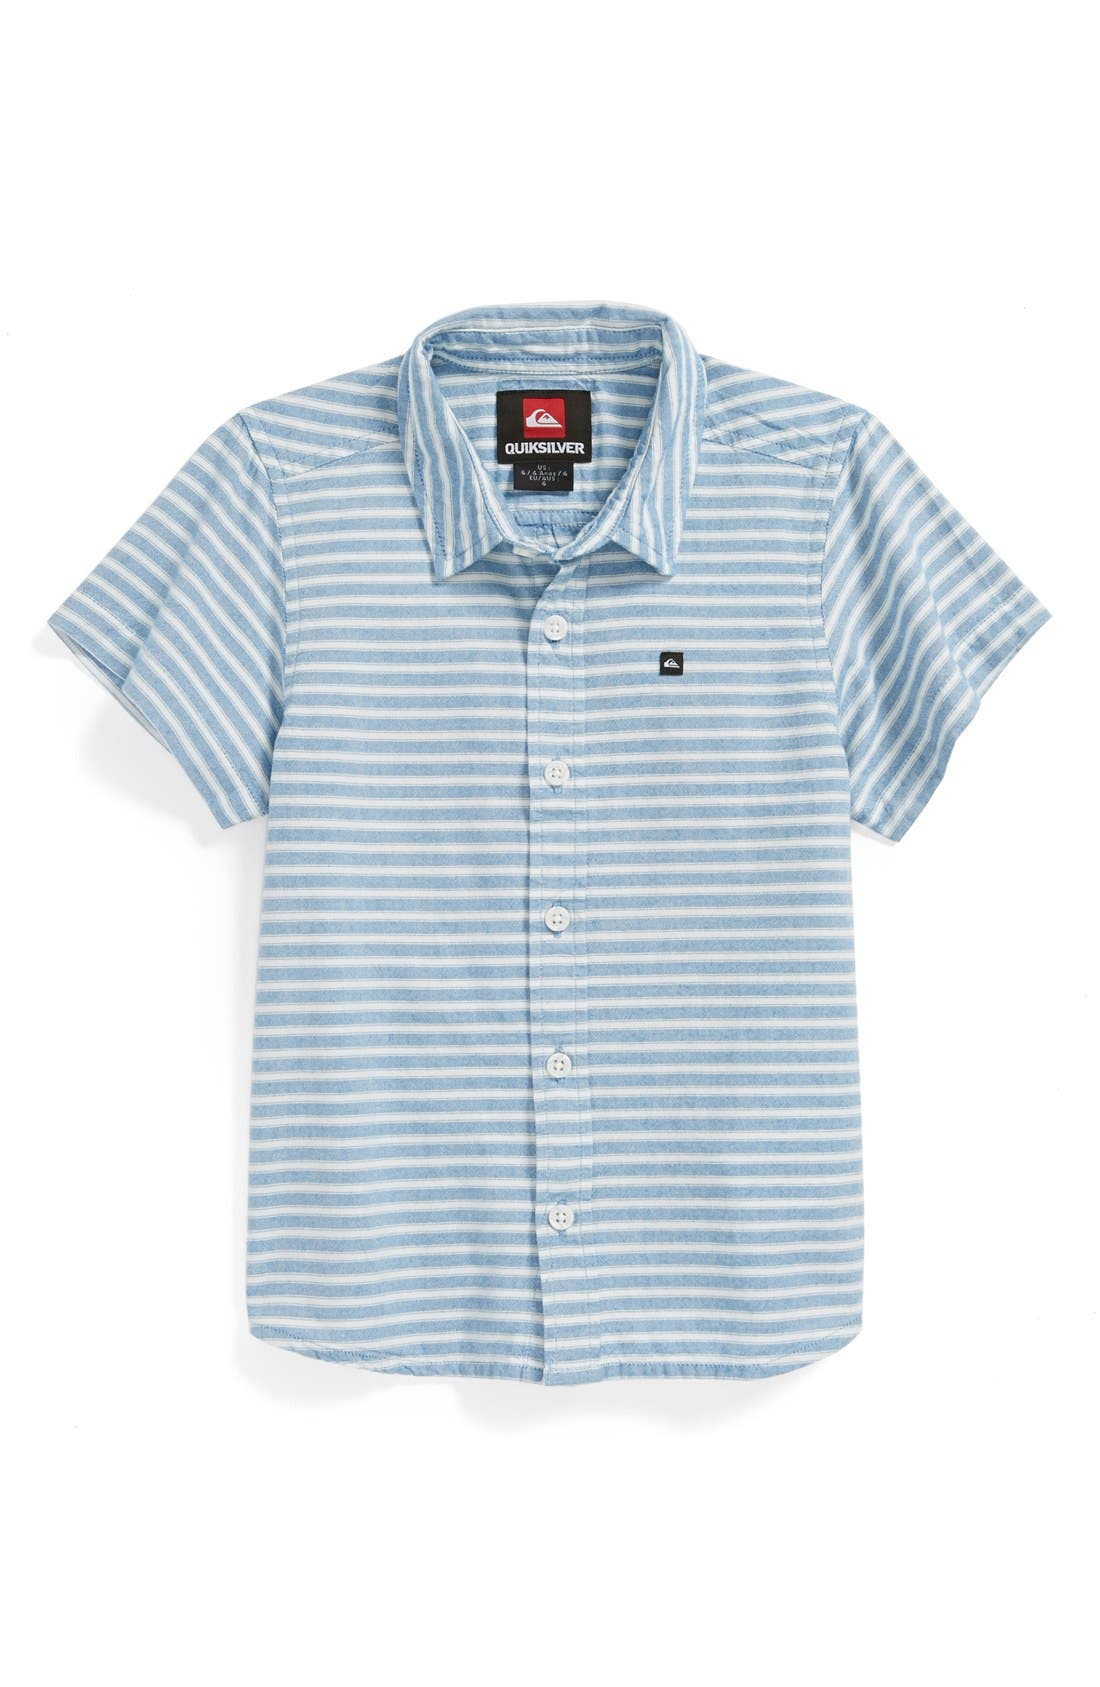 Alternate Image 1 Selected - Quiksilver 'Swamis' Stripe Shirt (Little Boys)